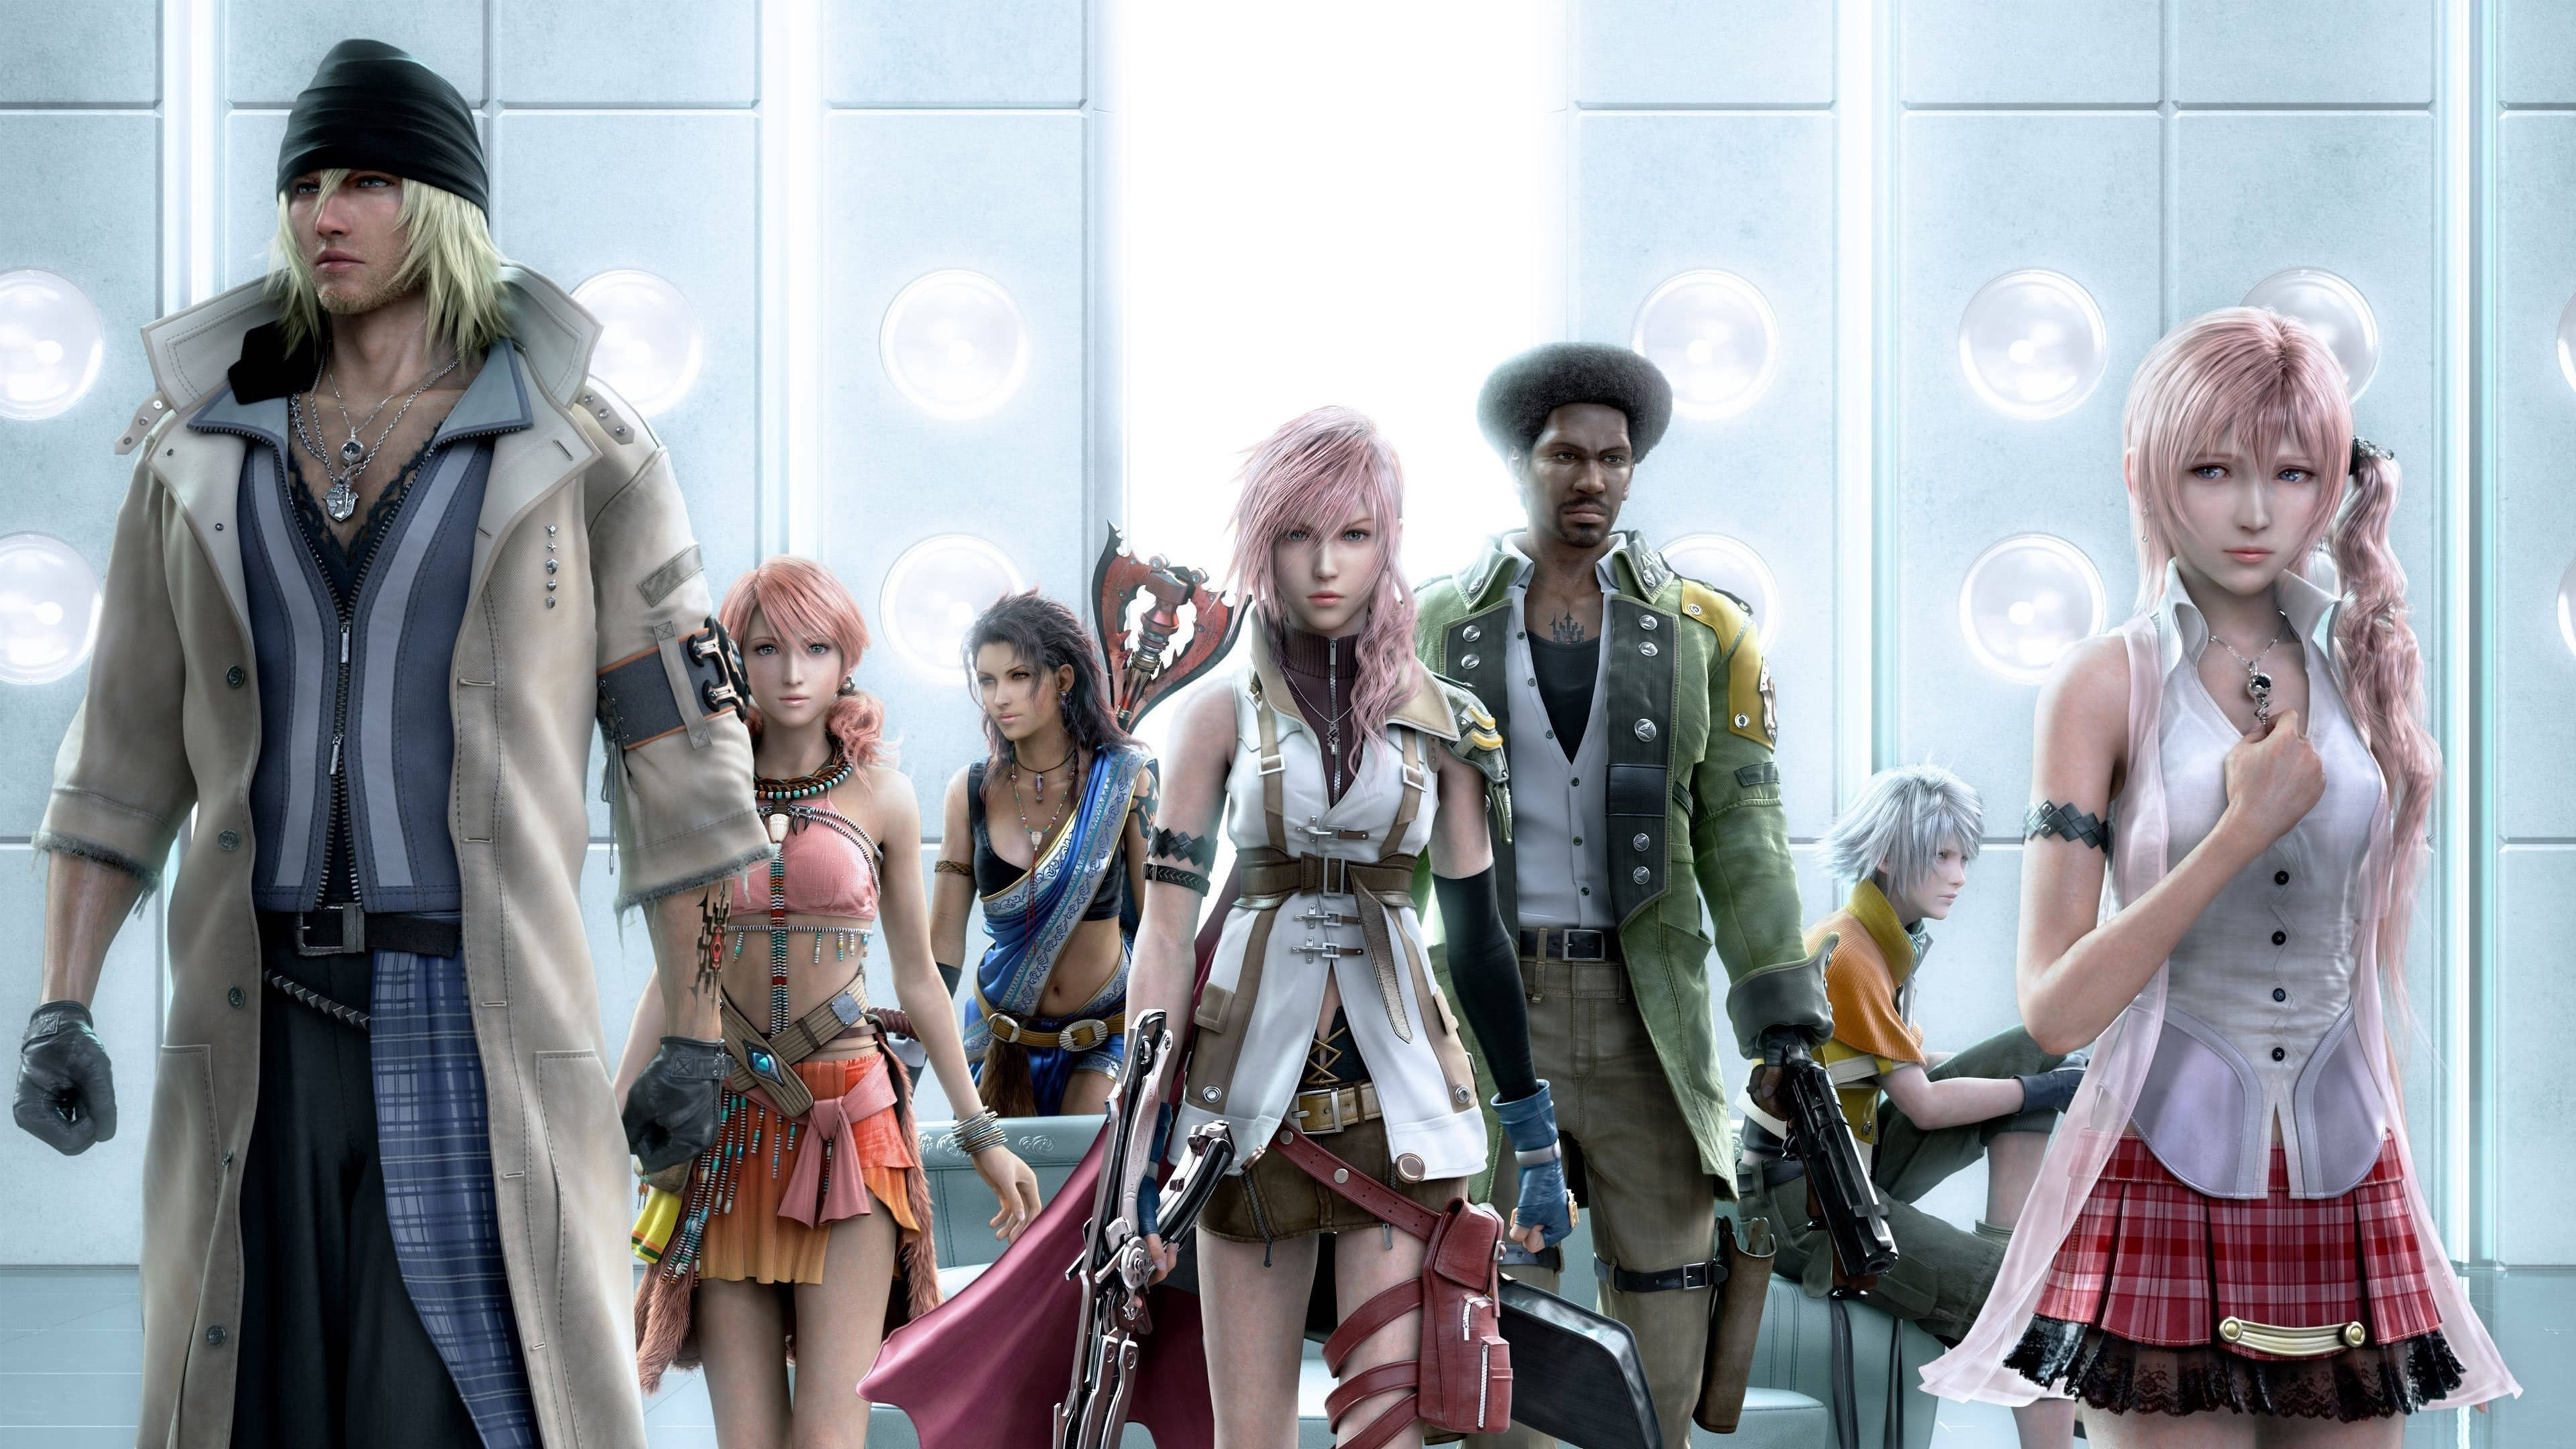 final fantasy xiii 8 characters uhd 4k wallpaper